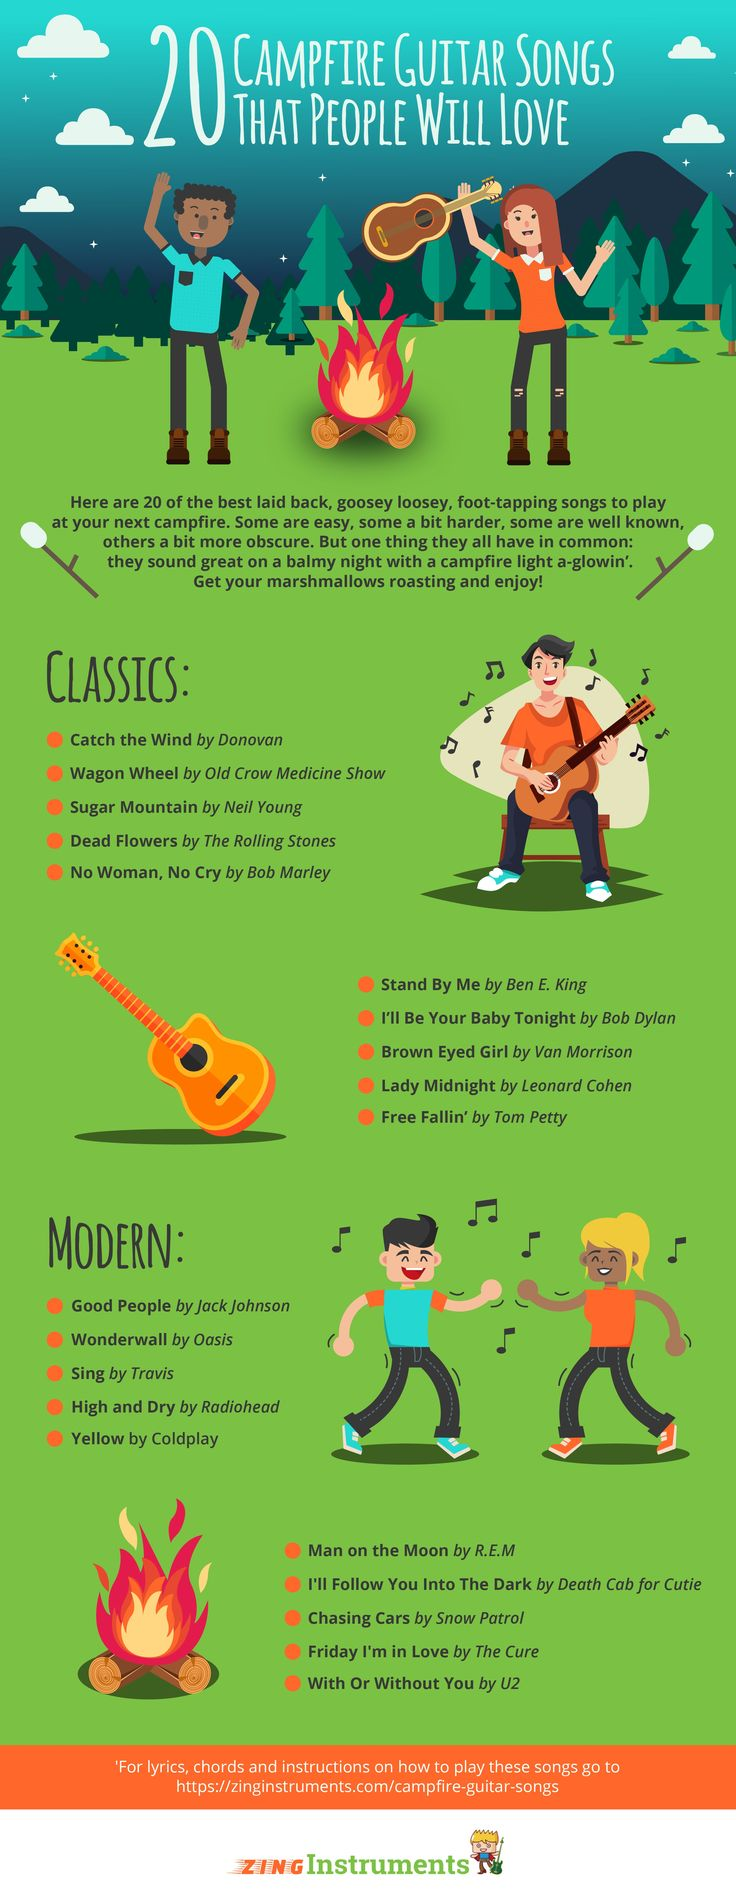 20 best campfire guitar songs images on pinterest sheet music 20 of the best guitar songs for playing around the campfire hexwebz Image collections